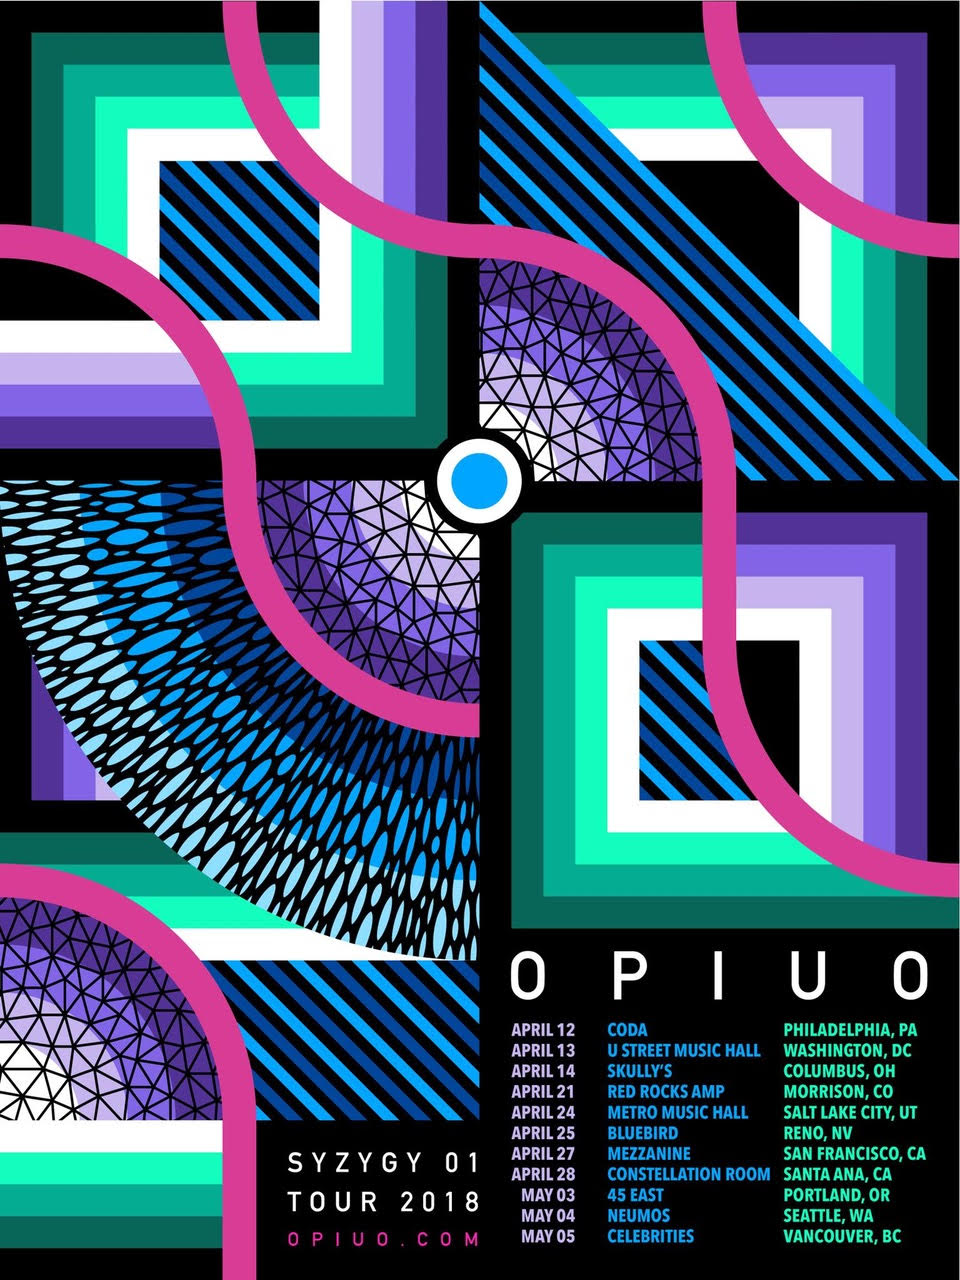 ... Including GRiZ, Pretty Lights, Bassnectar And Many More. He Has Kept  Himself Busy By Headlining Some Of The Best Venues Our Country Has To  Offeru2013 ...